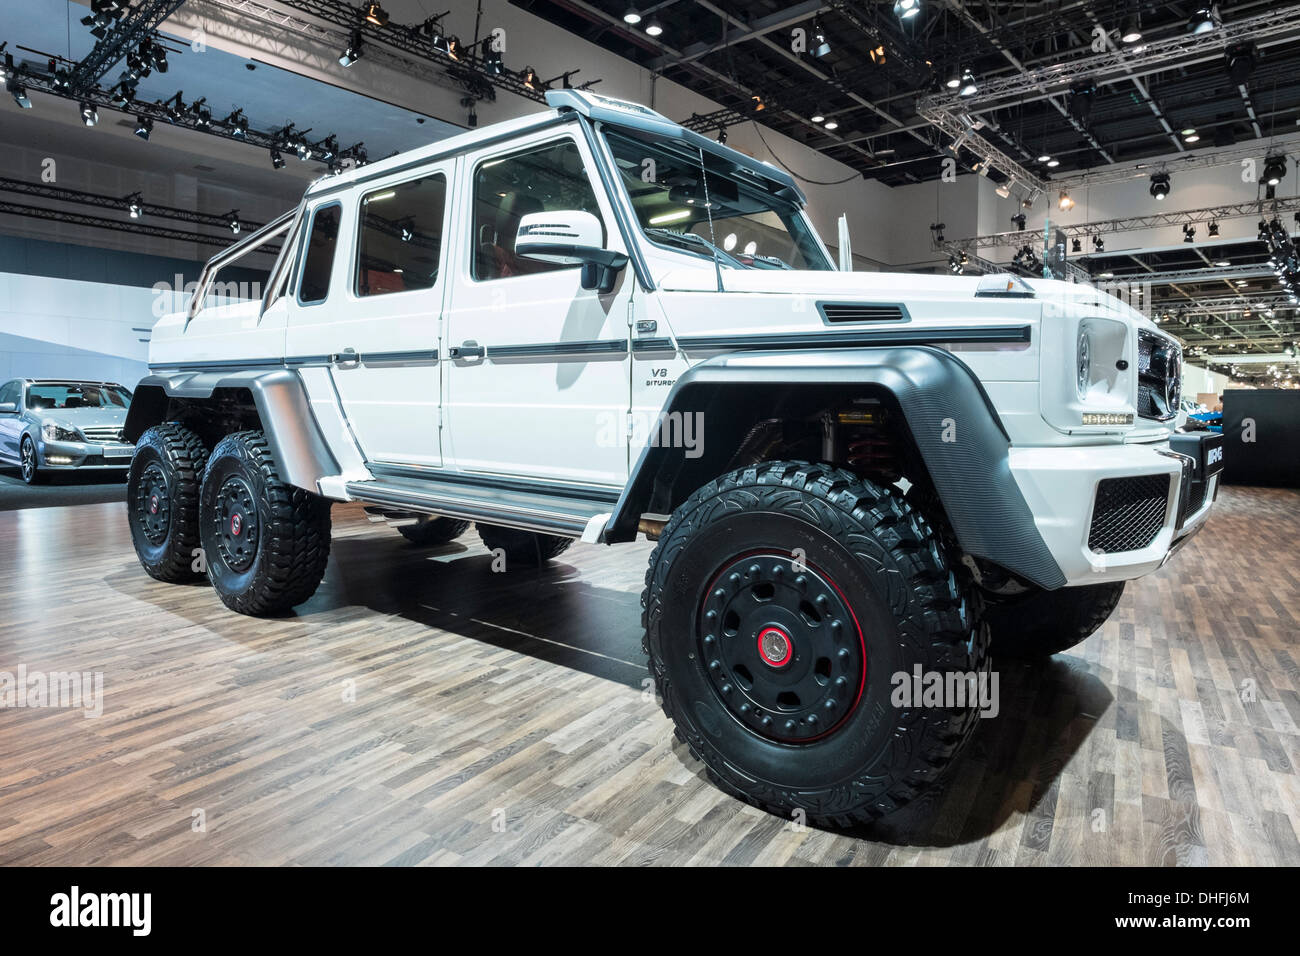 Mercedes benz g63 amg 6x6 price australia for Mercedes benz g63 amg 2013 price